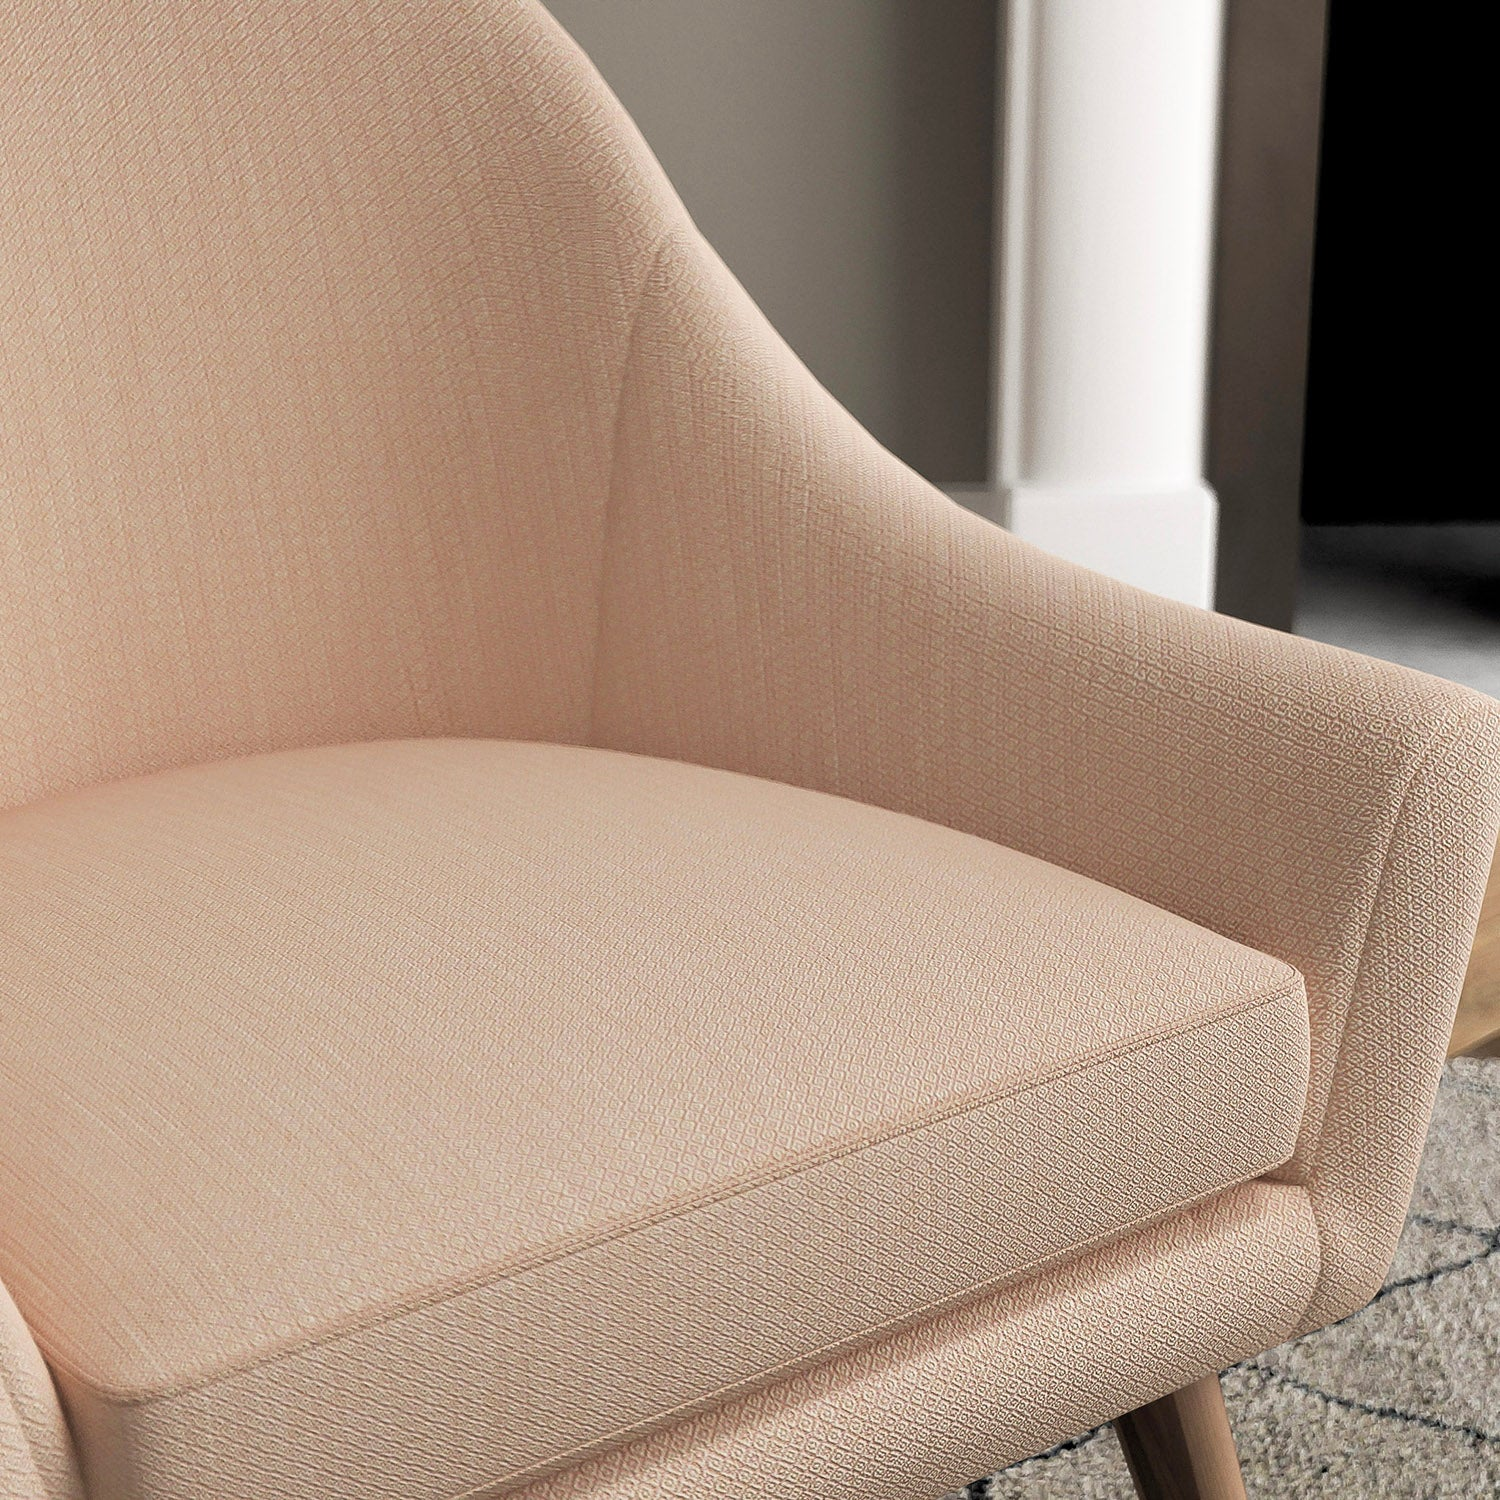 Chair with a blush pink and neutral upholstery fabric with a small diamond weave fabric